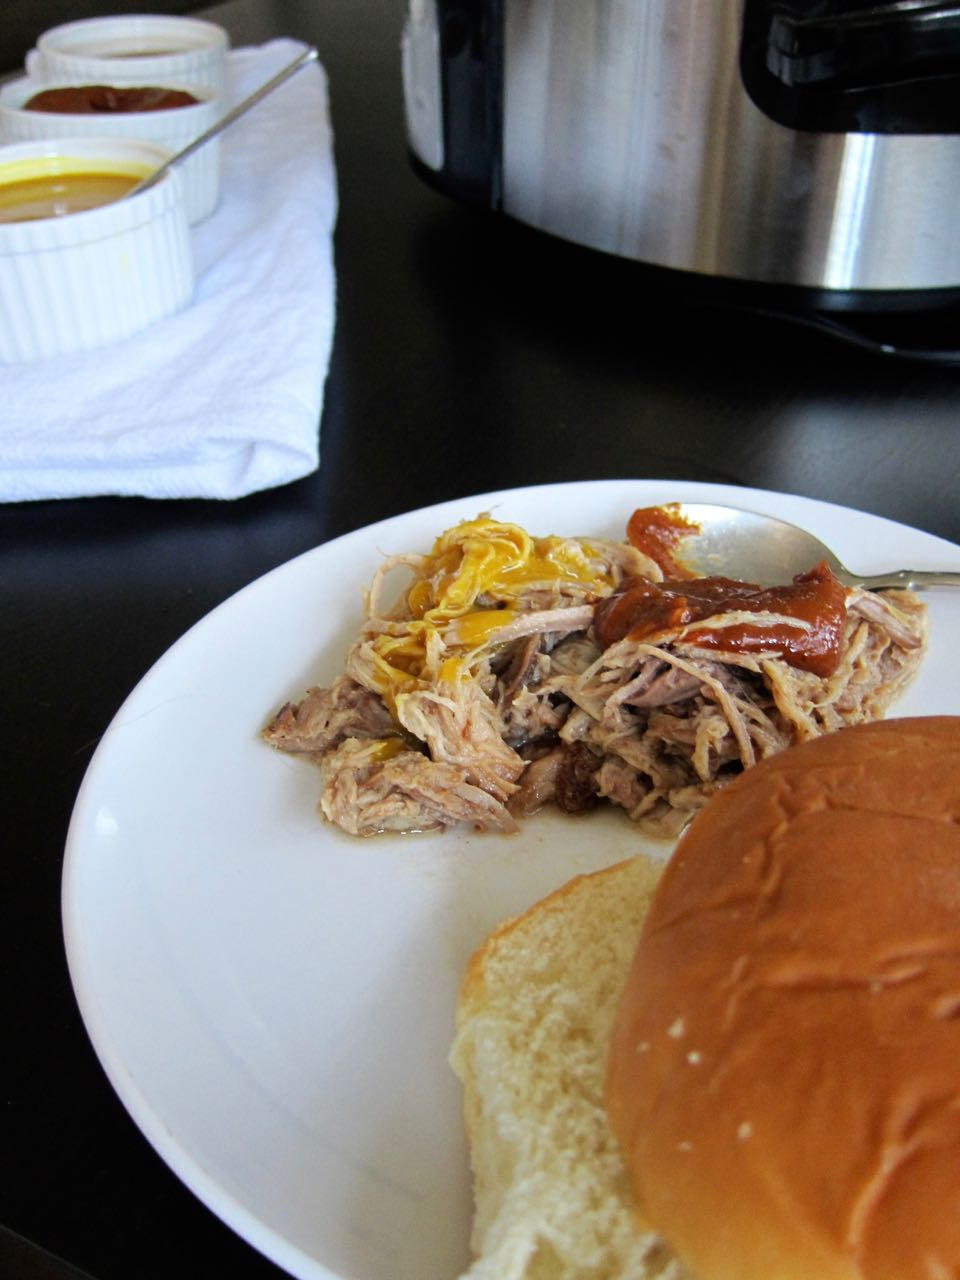 Pulled Pork with BBQ sauces